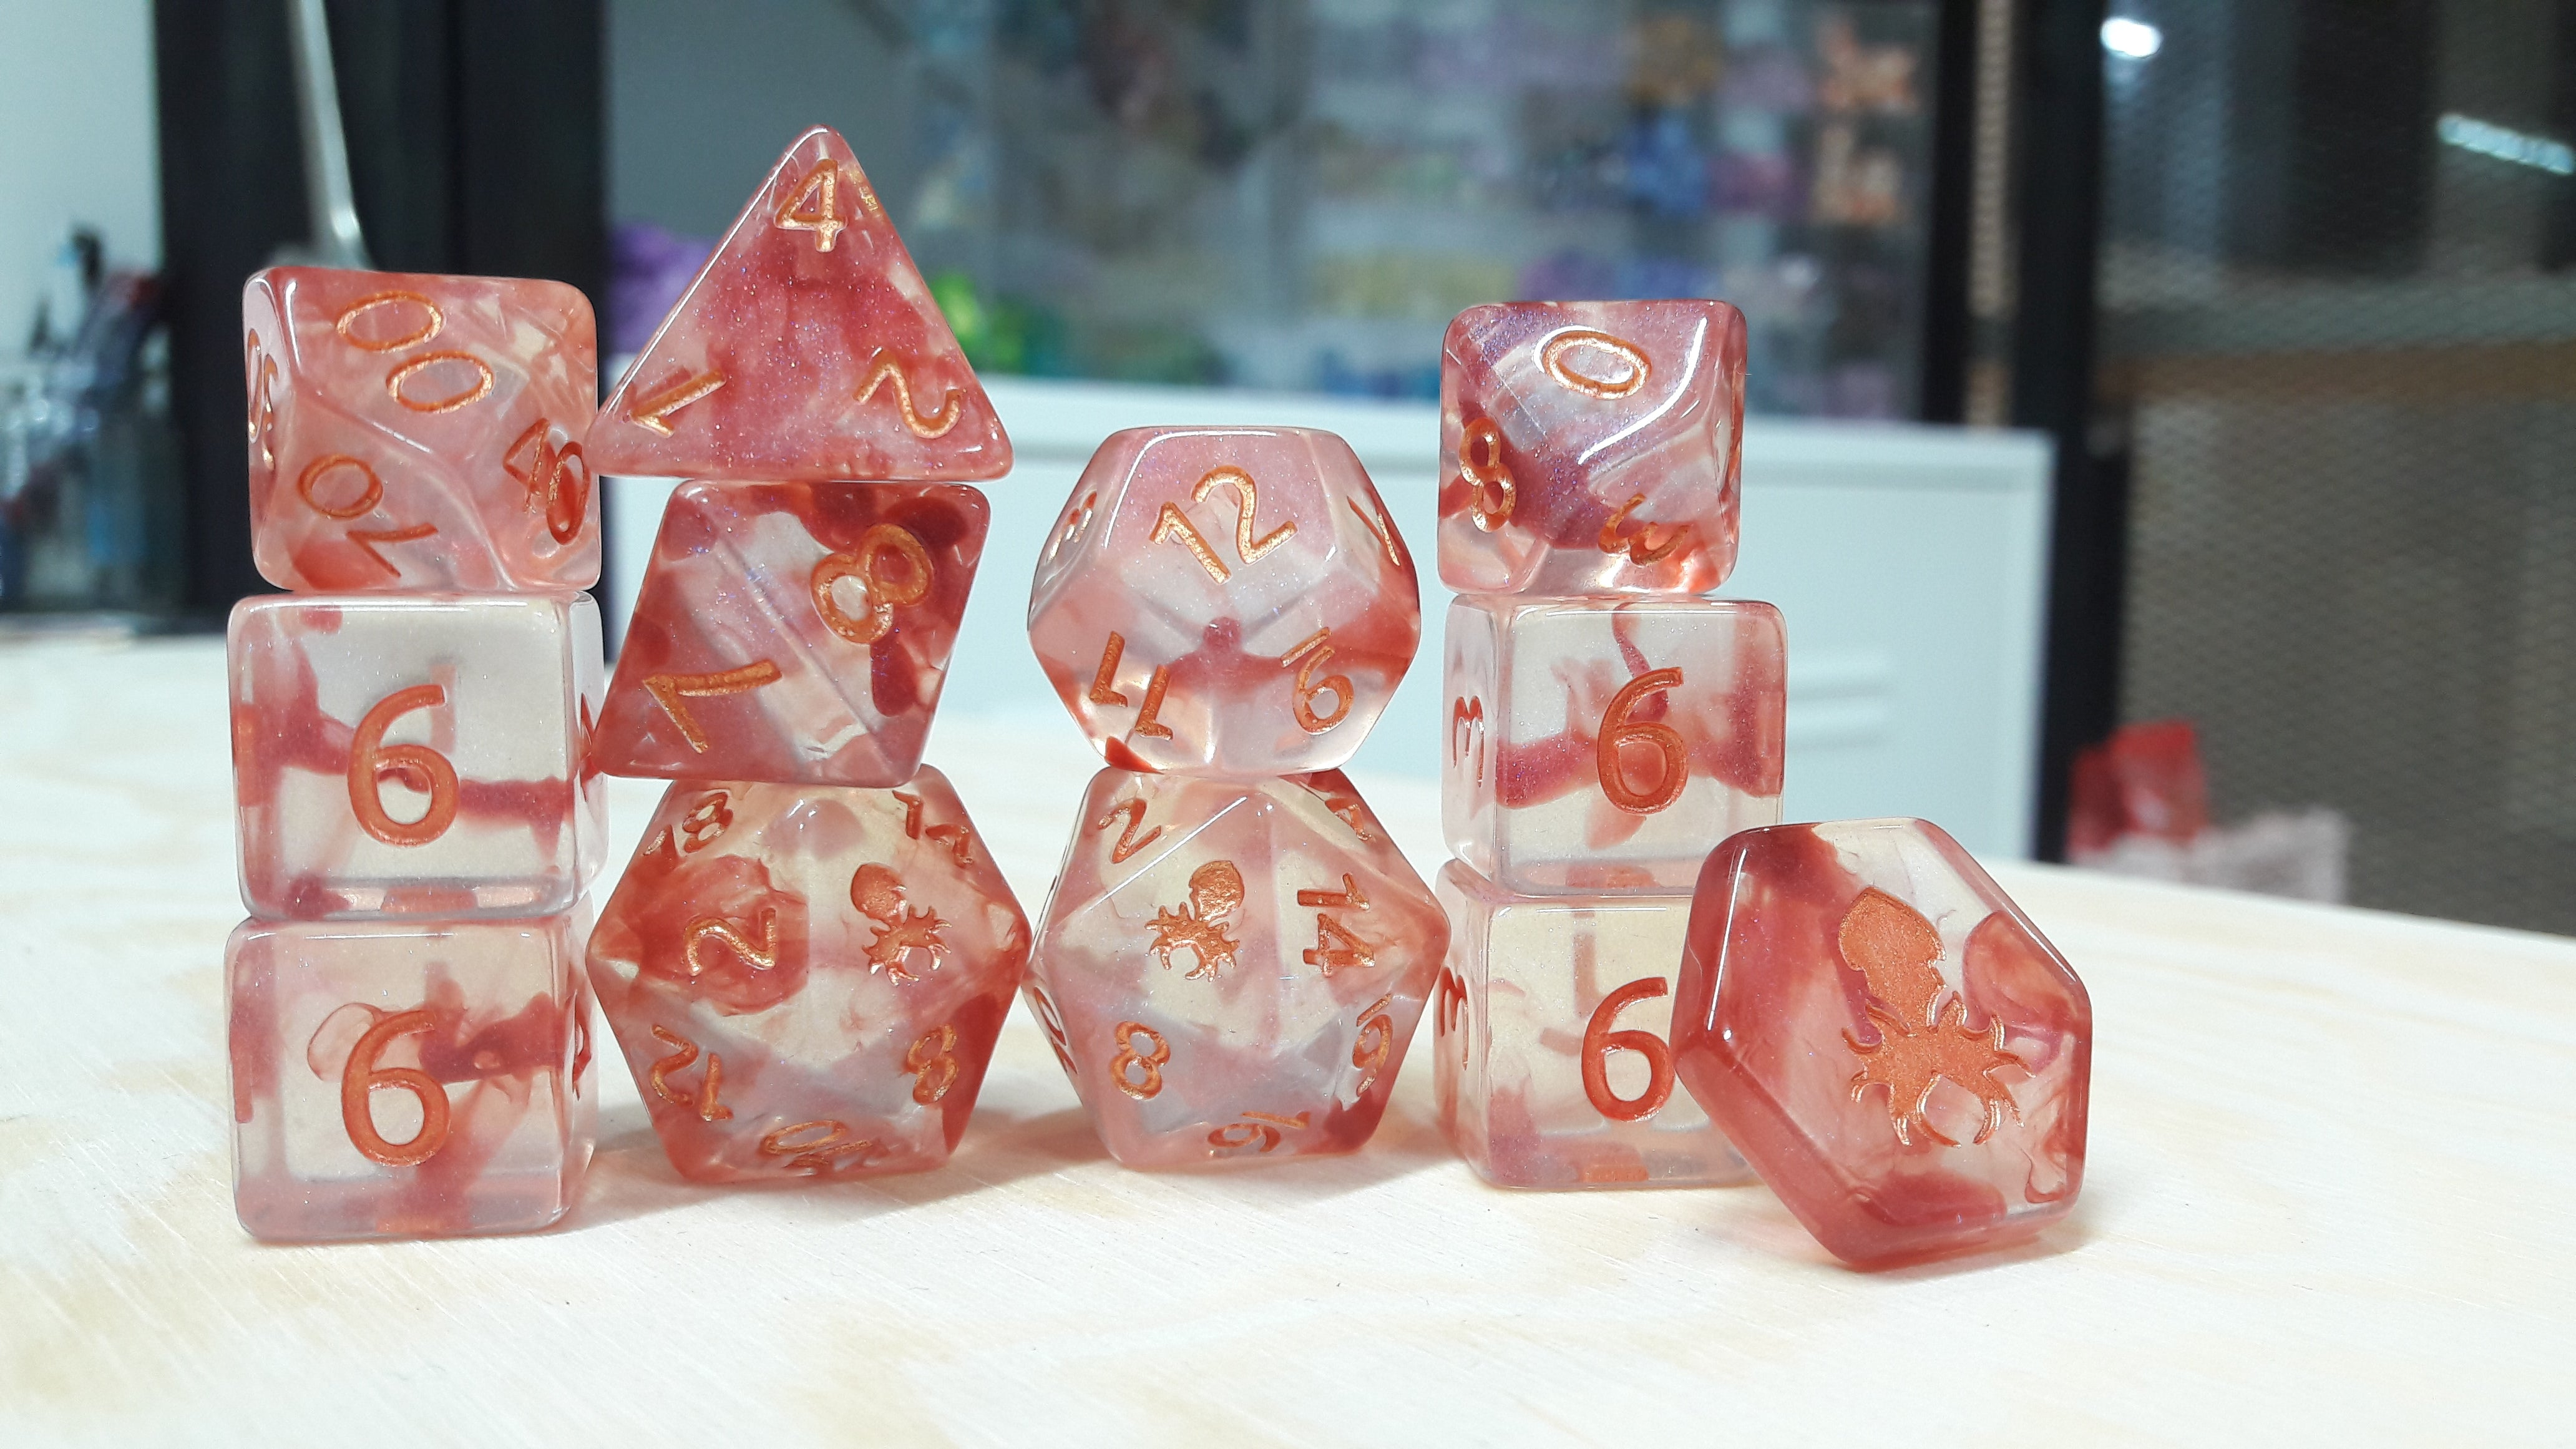 Blood Curse 12pc Polyhedral Dice set with Copper Ink - Kraken Dice | Sunny Pair'O'Dice